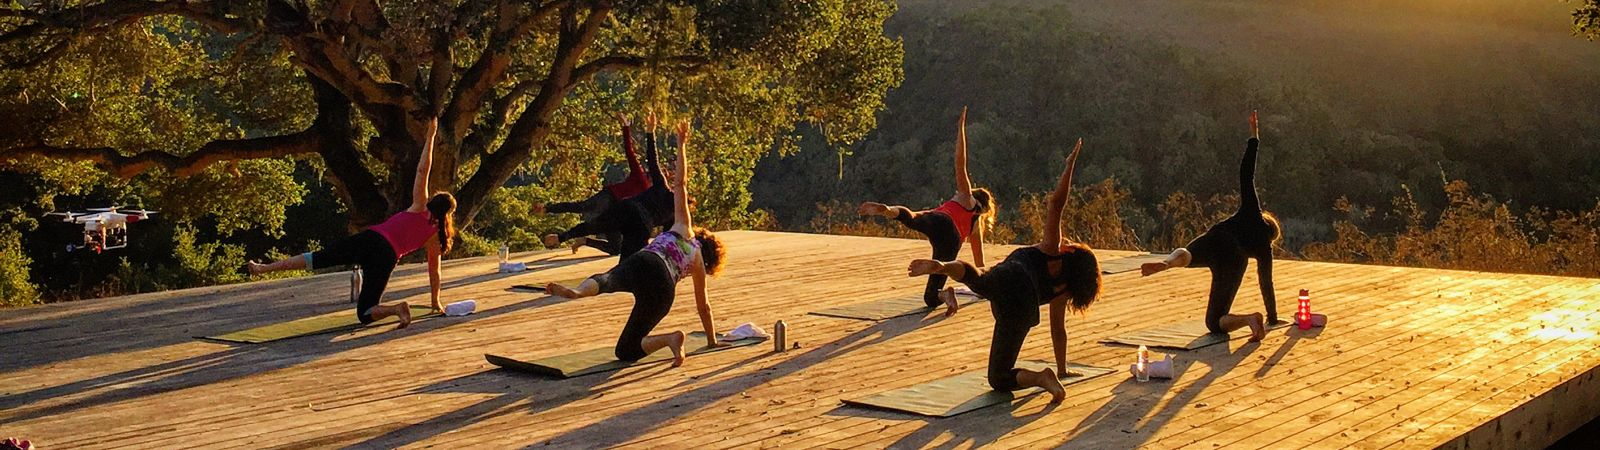 Carmel Valley Ranch_Activities_Outdoor Yoga Sunset